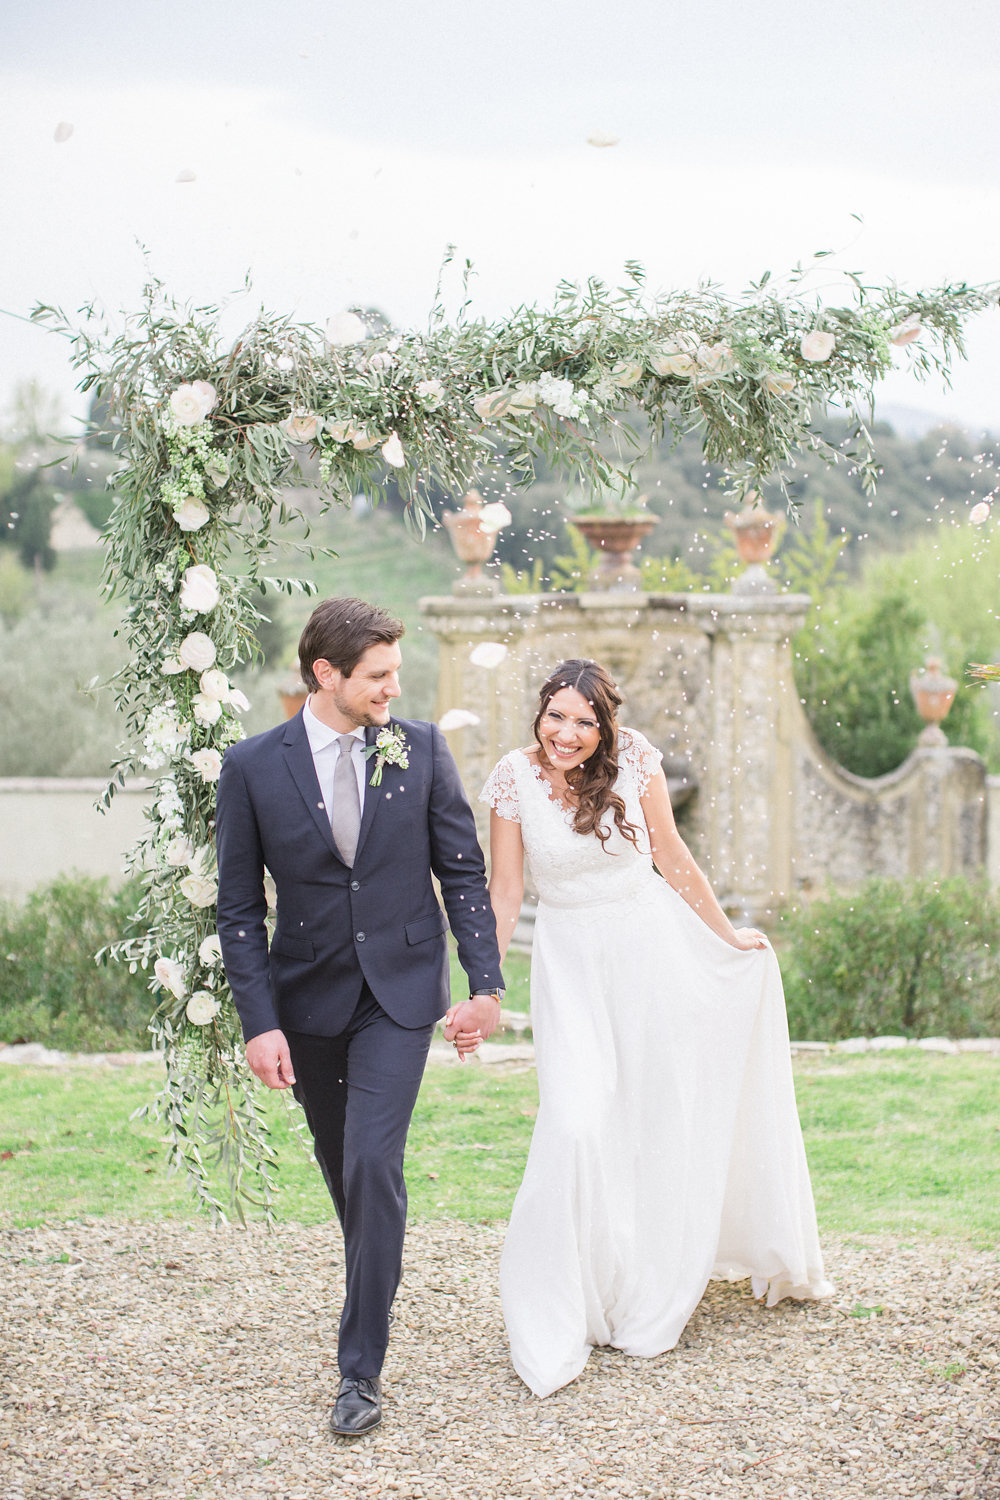 Tuscany Wedding Photographer Roberta Facchini 126